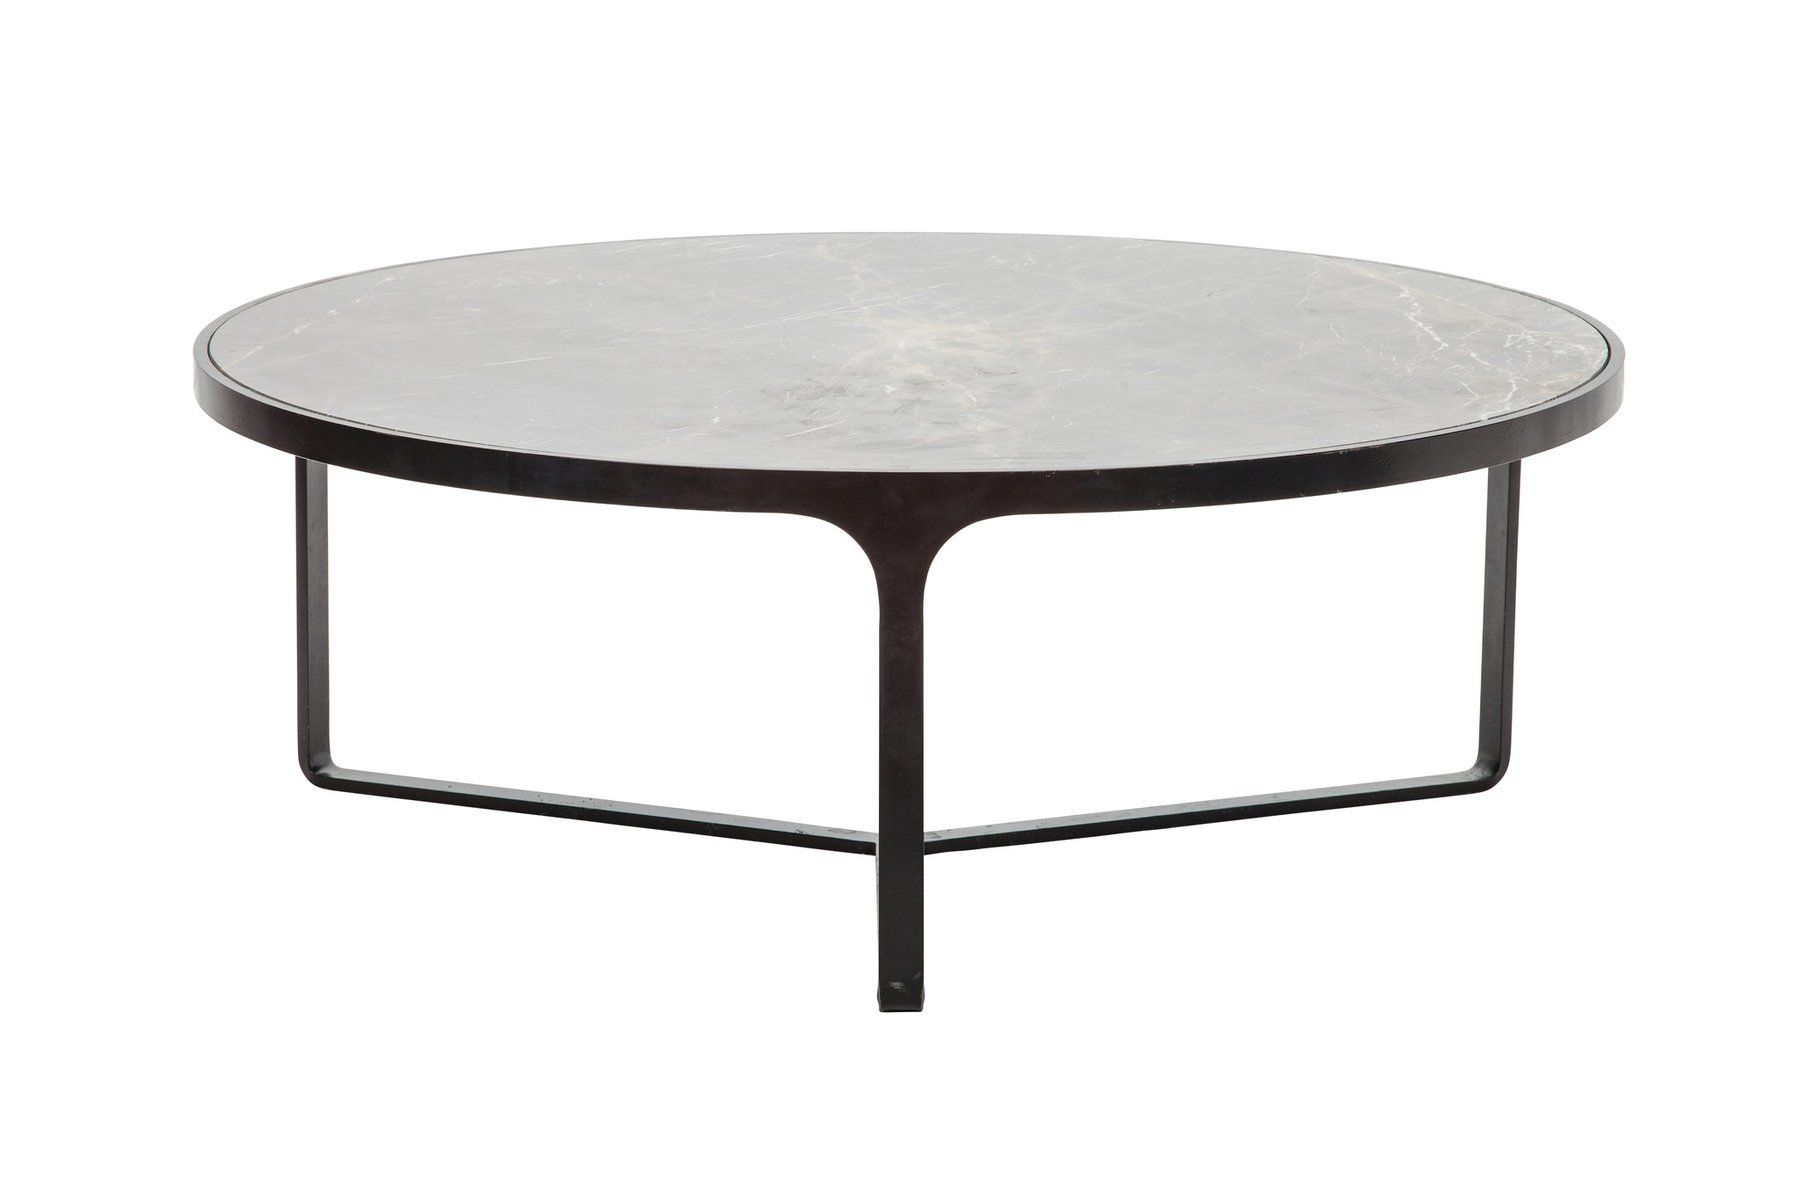 Zoe Oval Coffee Table With Marble Top Coffee Table Marble Top Coffee Table Table [ 1201 x 1800 Pixel ]